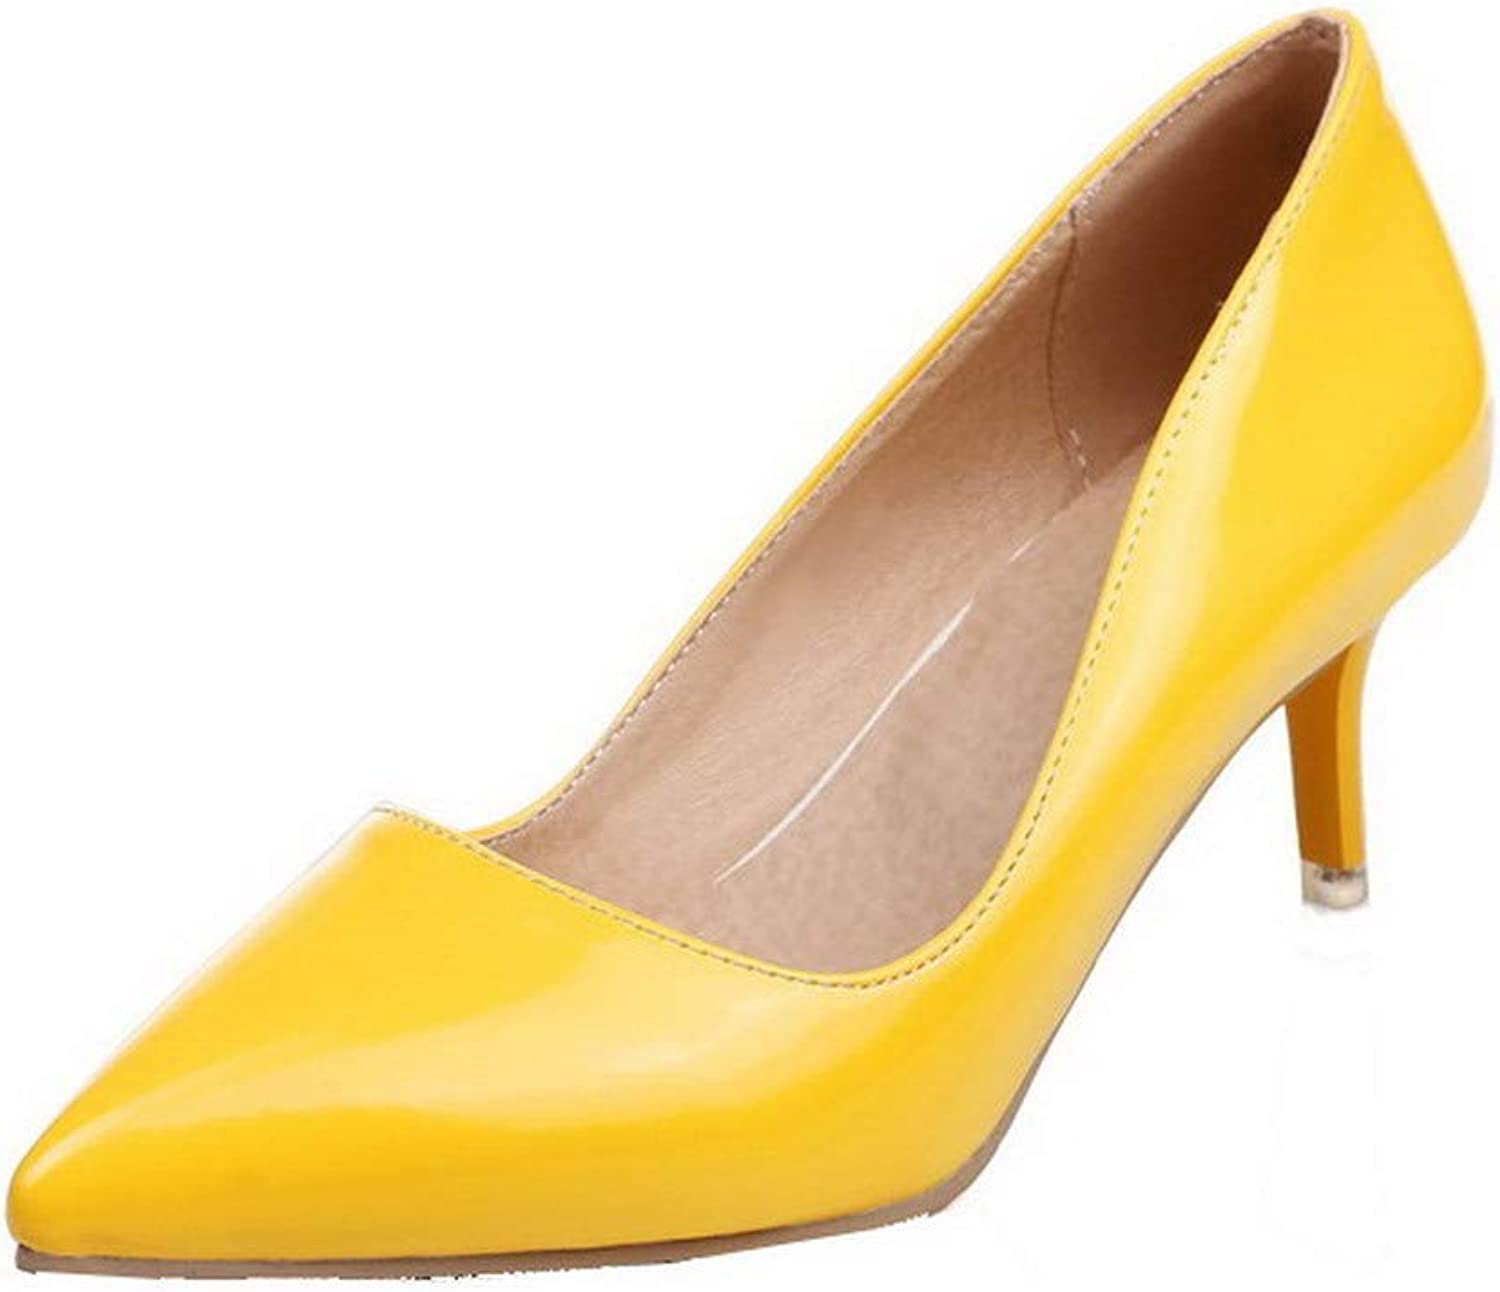 AllhqFashion Women's Pull-On Pointed Closed Toe Patent Leather Solid Pumps-shoes,FBUDD012123